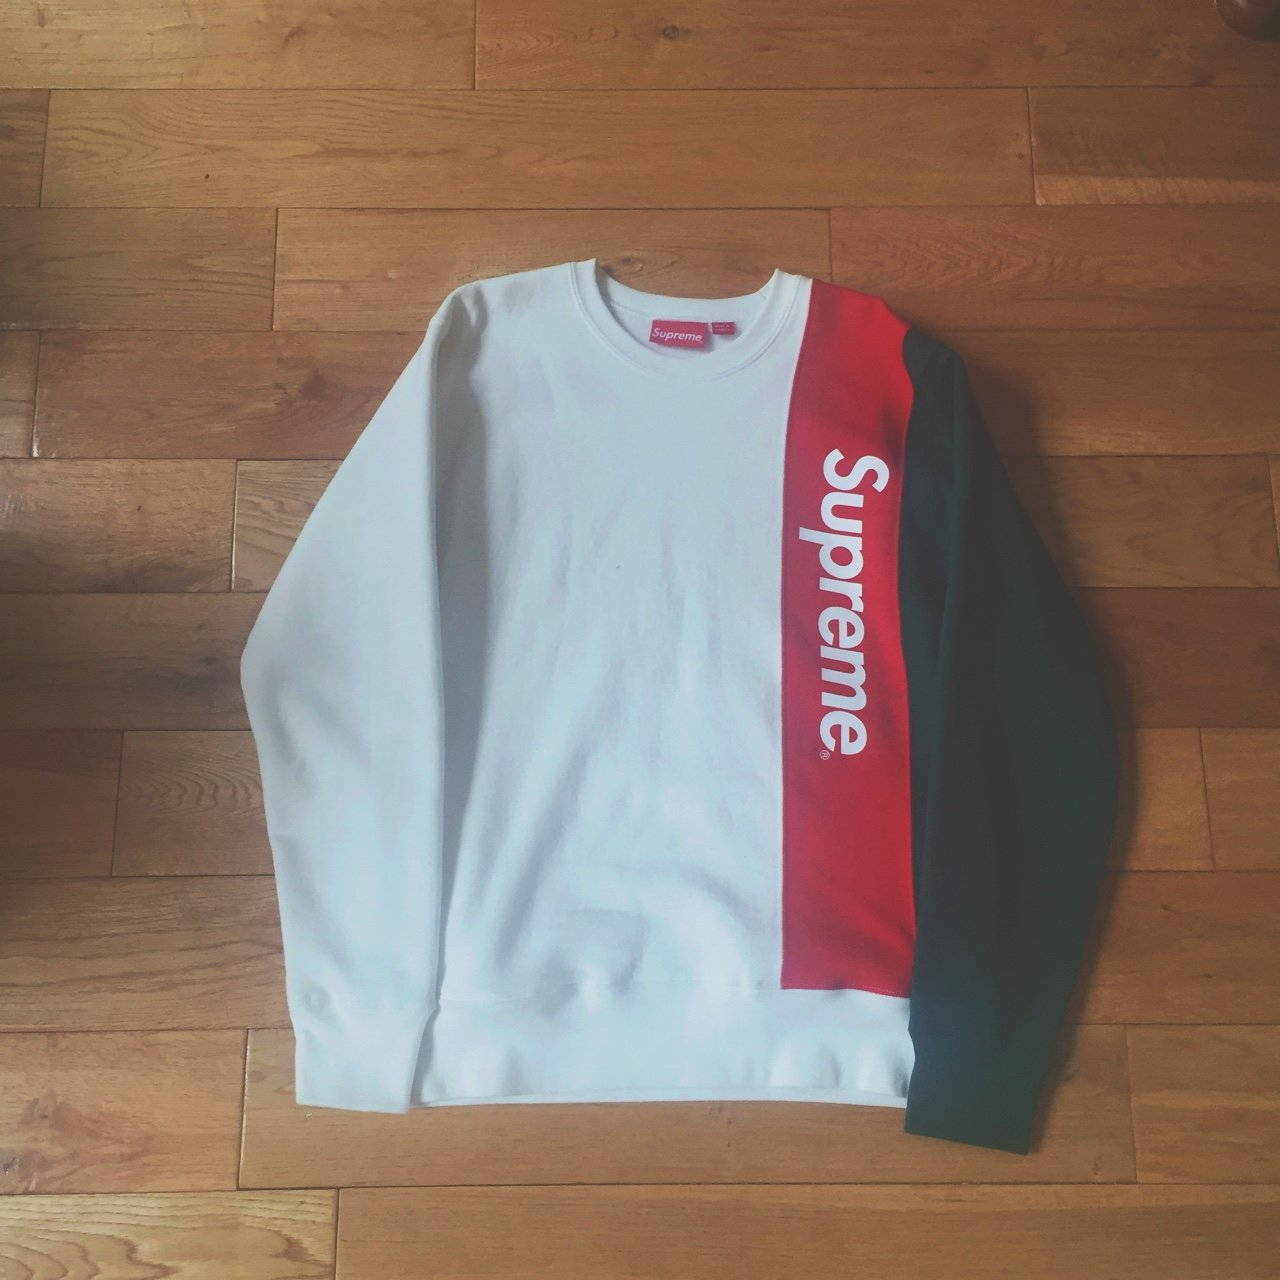 detailed look 41c55 eb8b9 Supreme panelled Crewneck in White, red and green   Size and - Depop